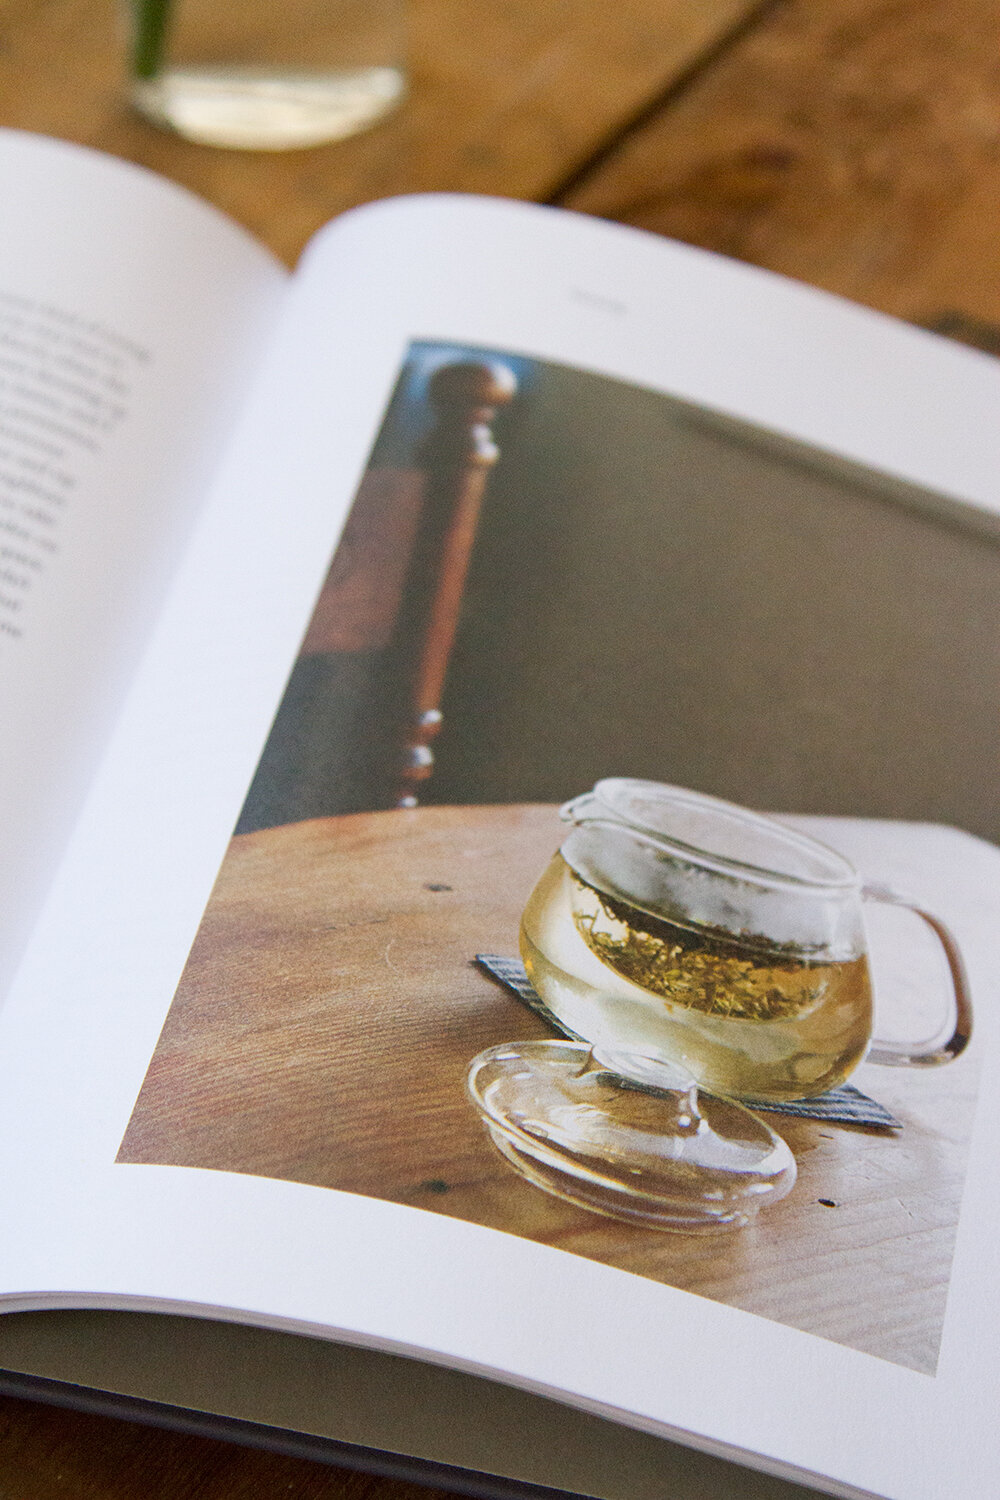 simple matters by erin boyle | reading my tea leaves